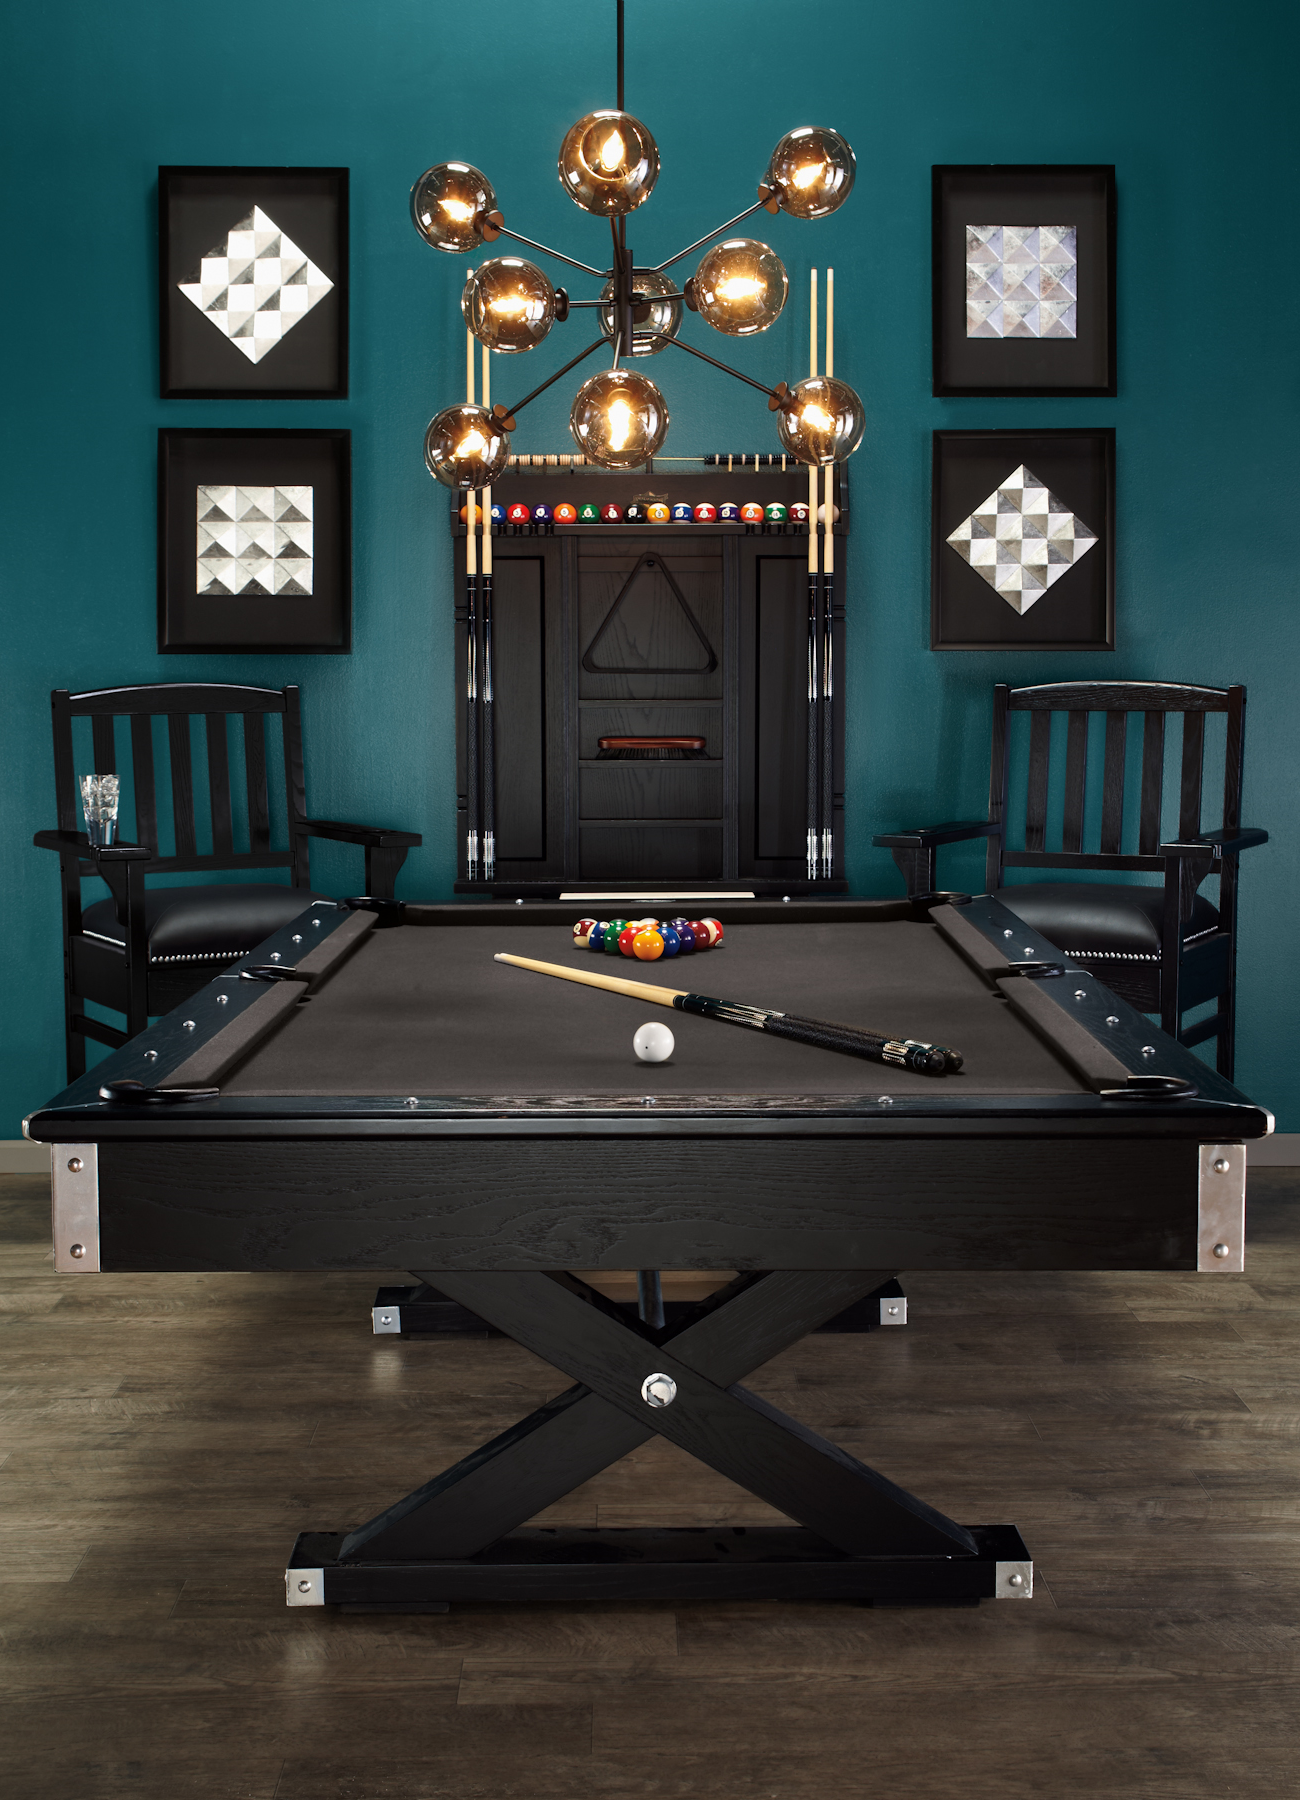 Unique pool tables family room contemporary with bold pool table cool - Bring Your Game Room To The Next Level Of Style You Won T Regret Modern Pool Tablespool Table